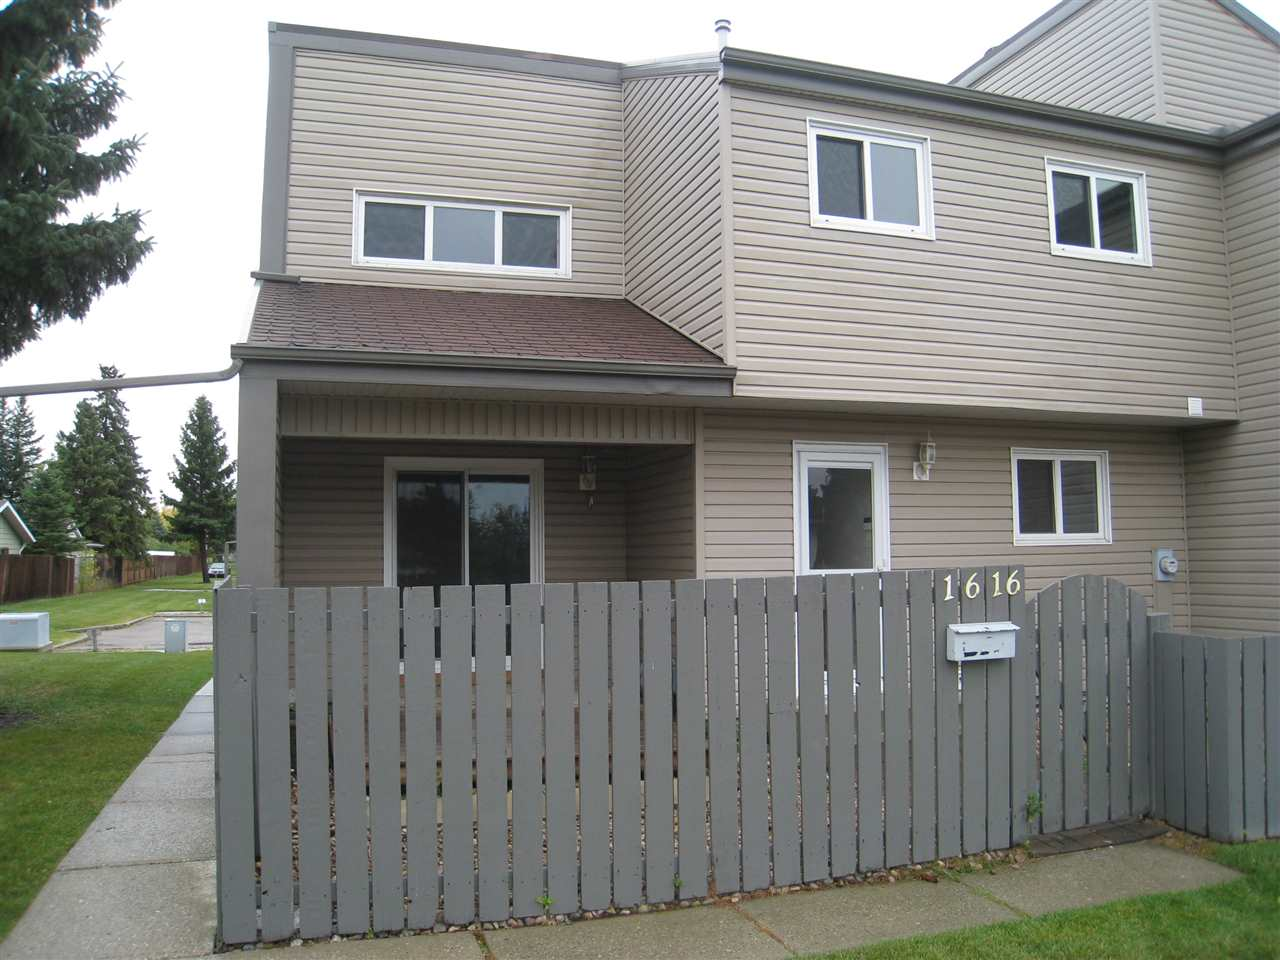 MLS® listing #E4167679 for sale located at 1616 LAKEWOOD Road W